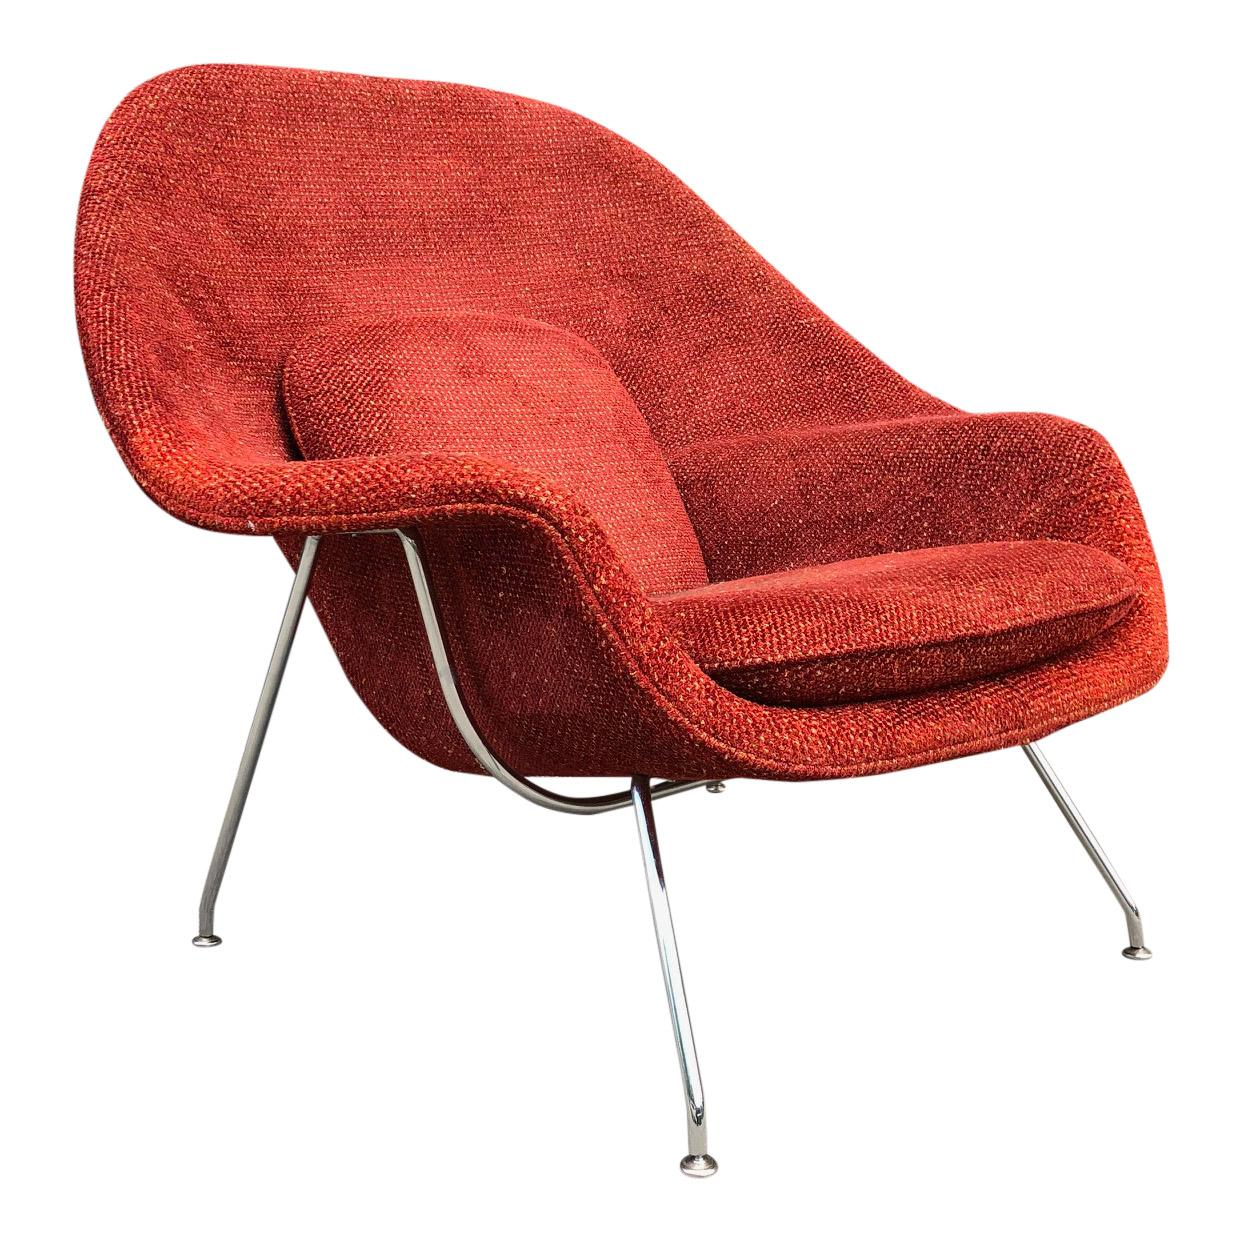 Eero Saarinen for Knoll Womb Chair  sc 1 st  1stDibs & Saarinen for Knoll Womb Chair with Ottoman For Sale at 1stdibs